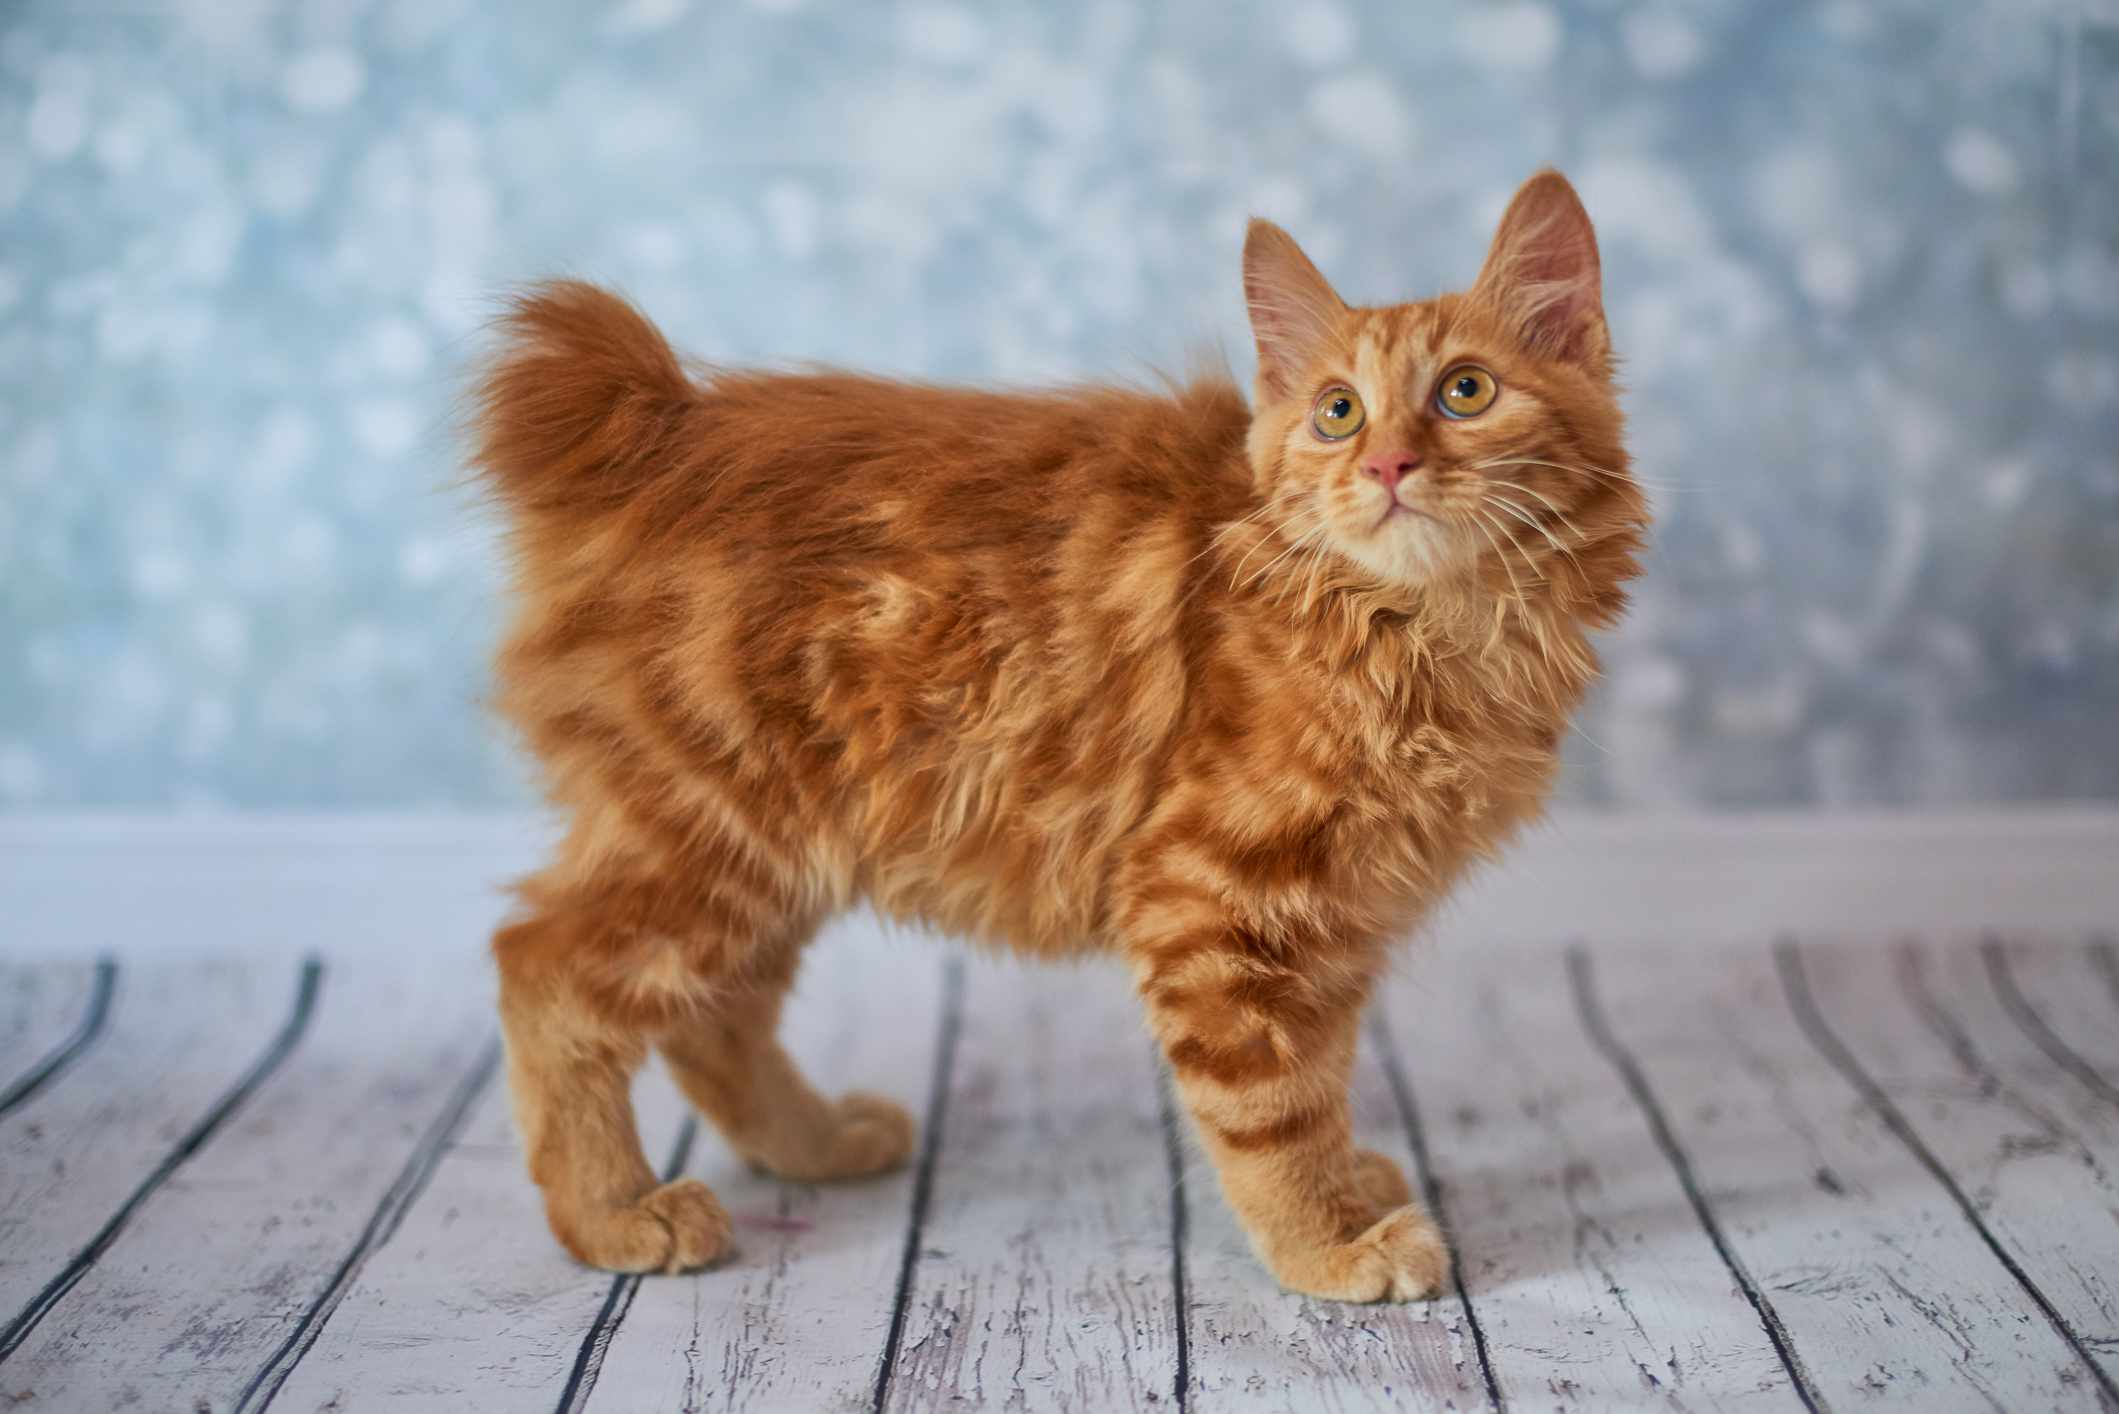 An orange cat with a short, bobbed tail looking above the camera.